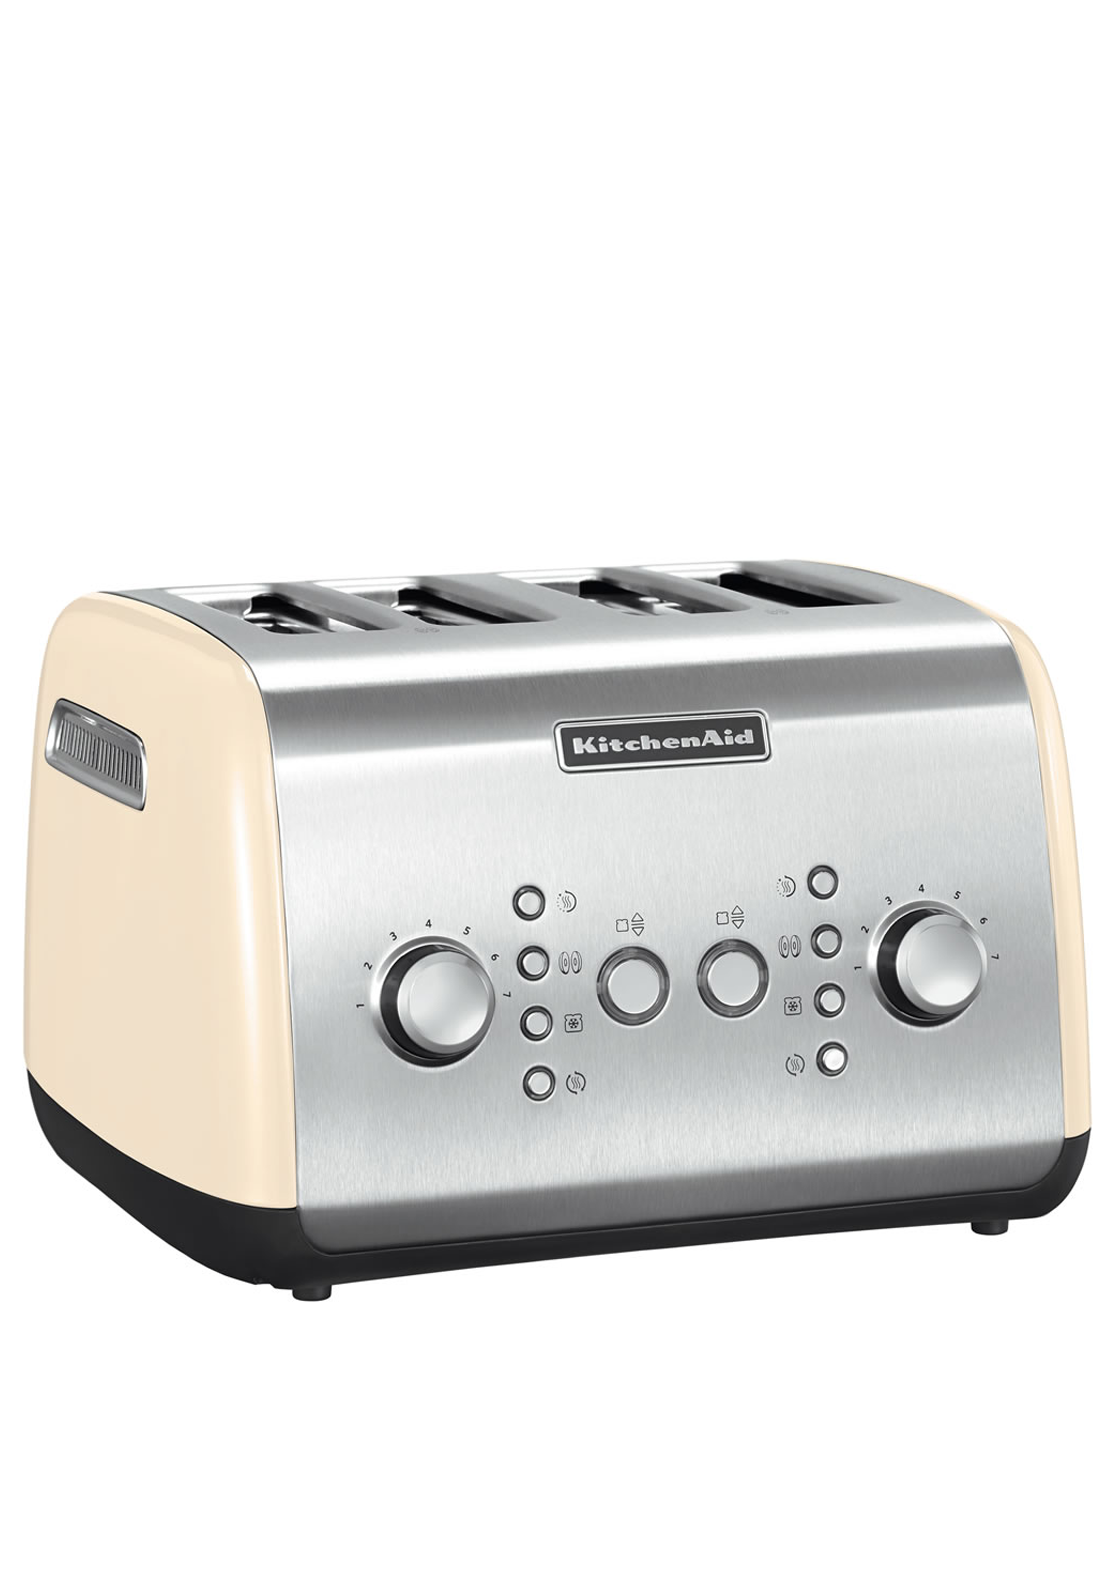 KitchenAid 4 Slice Motorized Toaster, Almond Cream